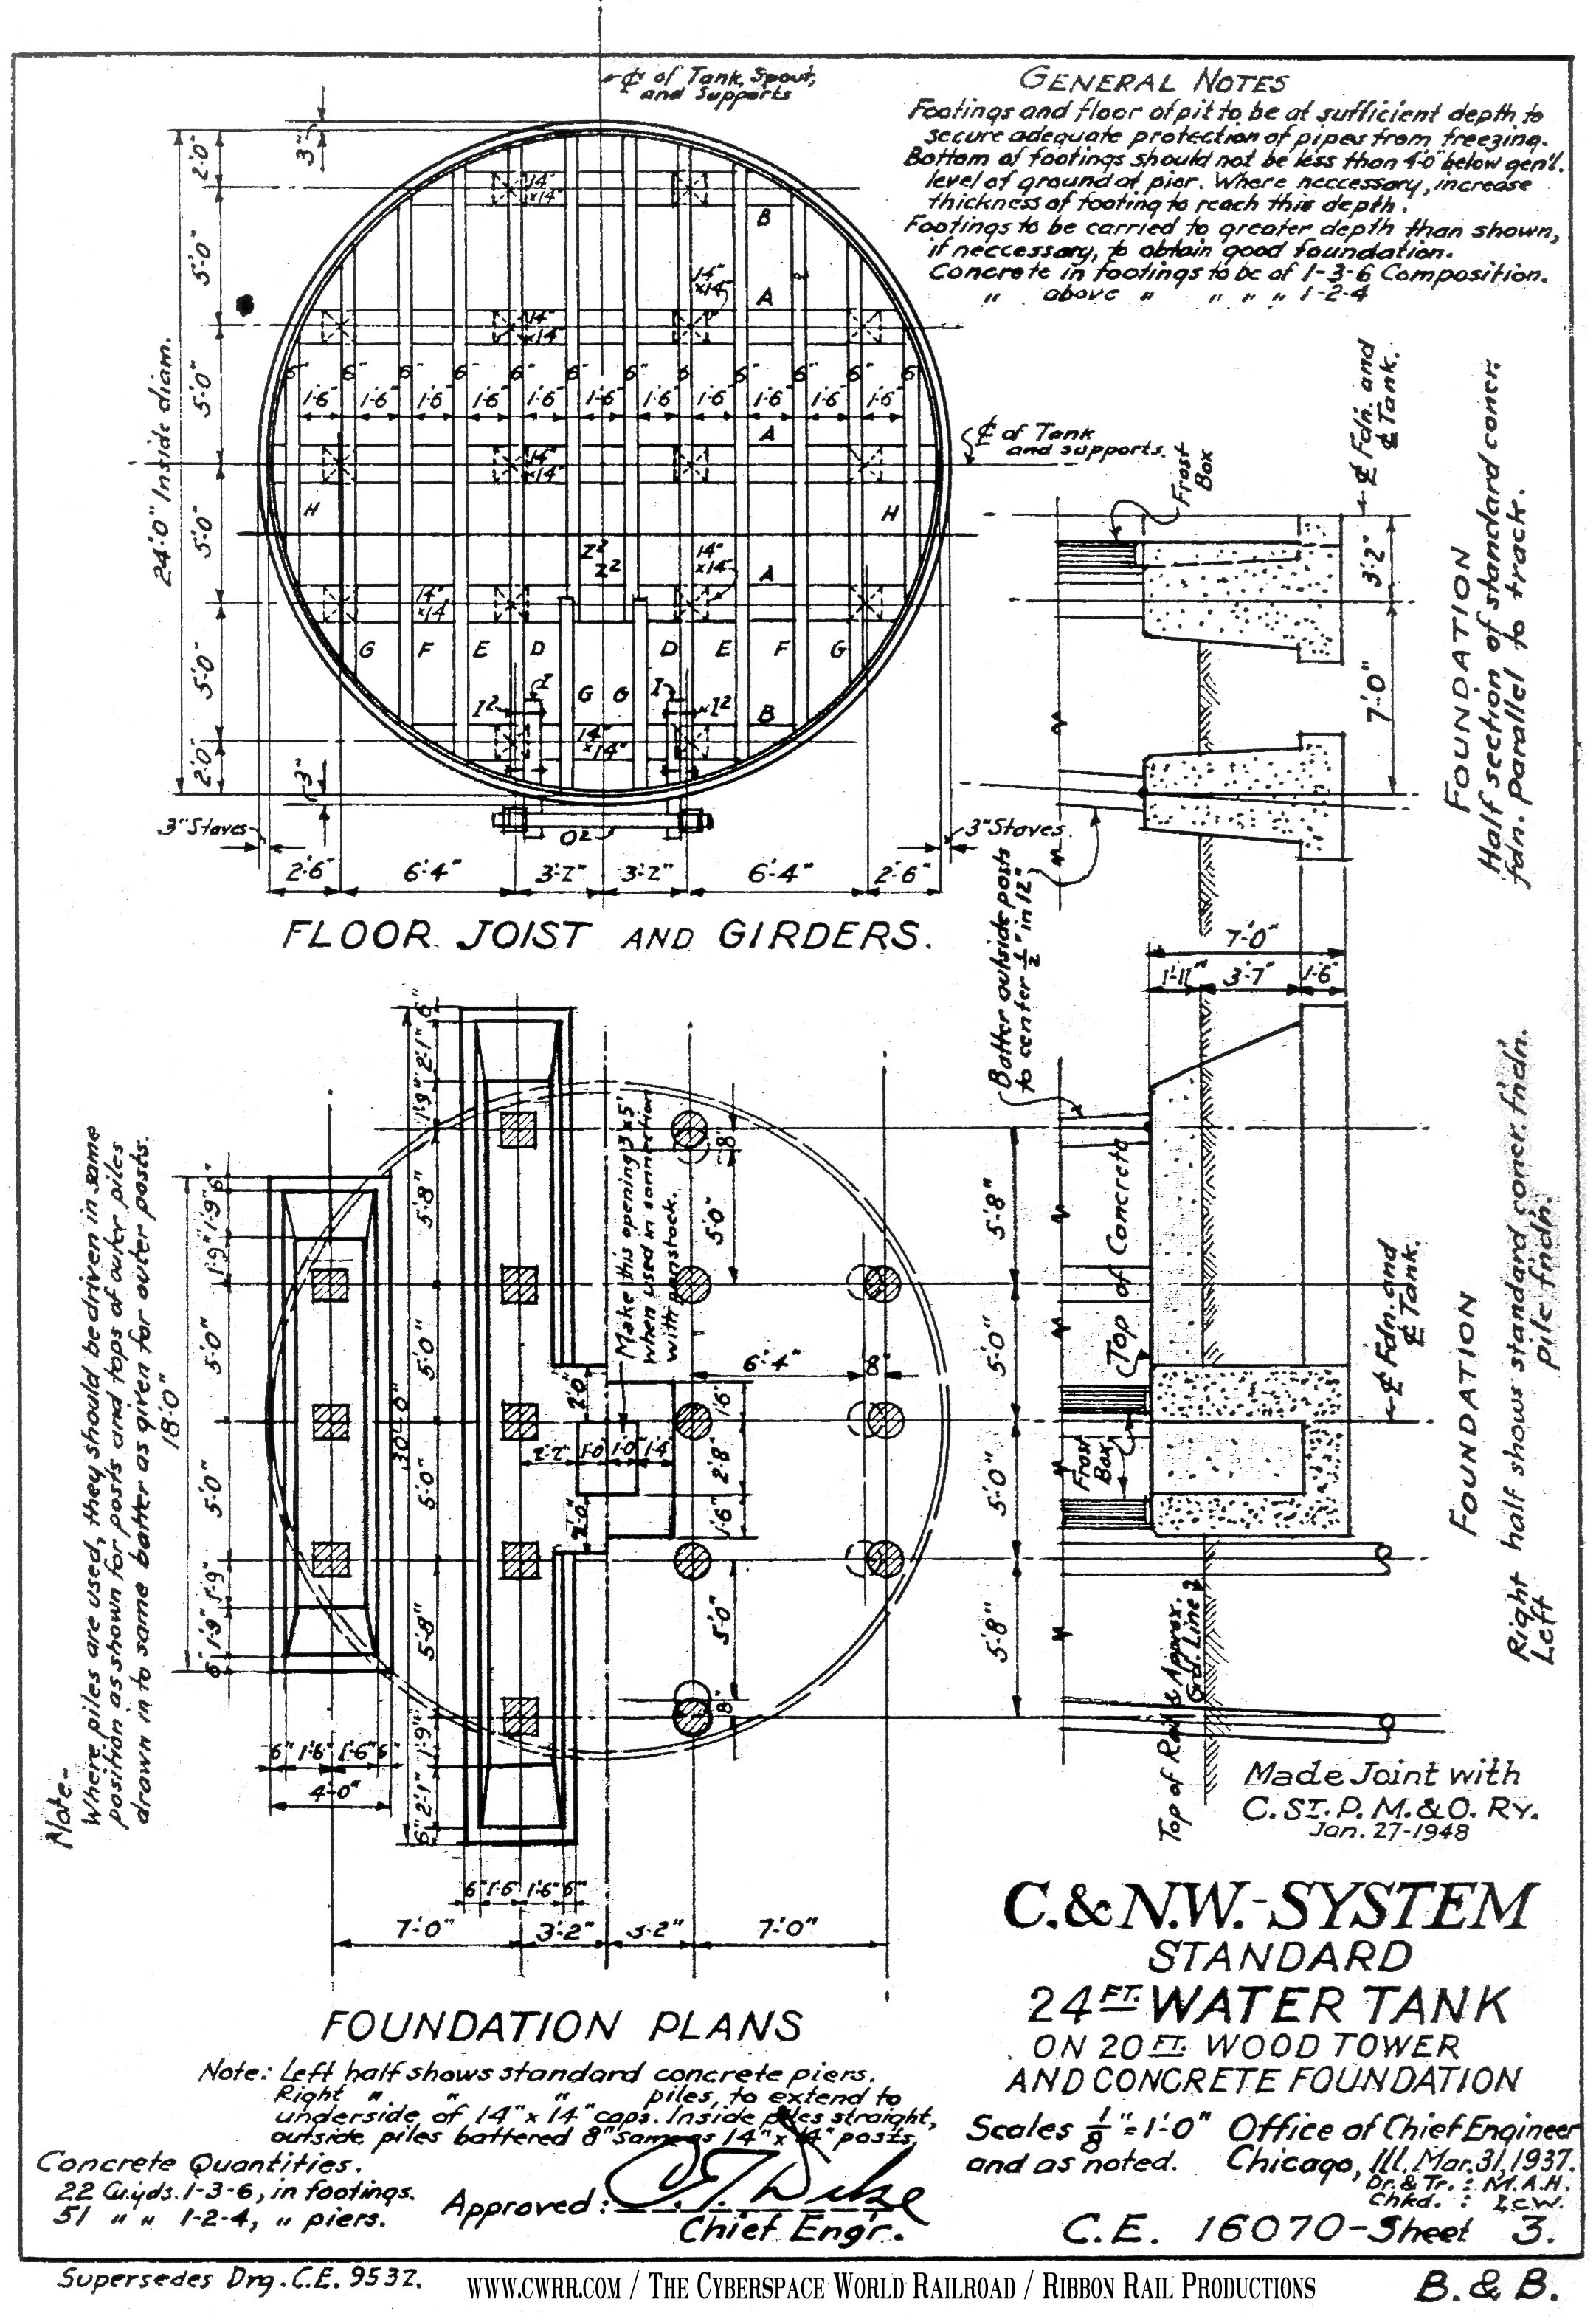 Water tower design drawings images for Cistern plans